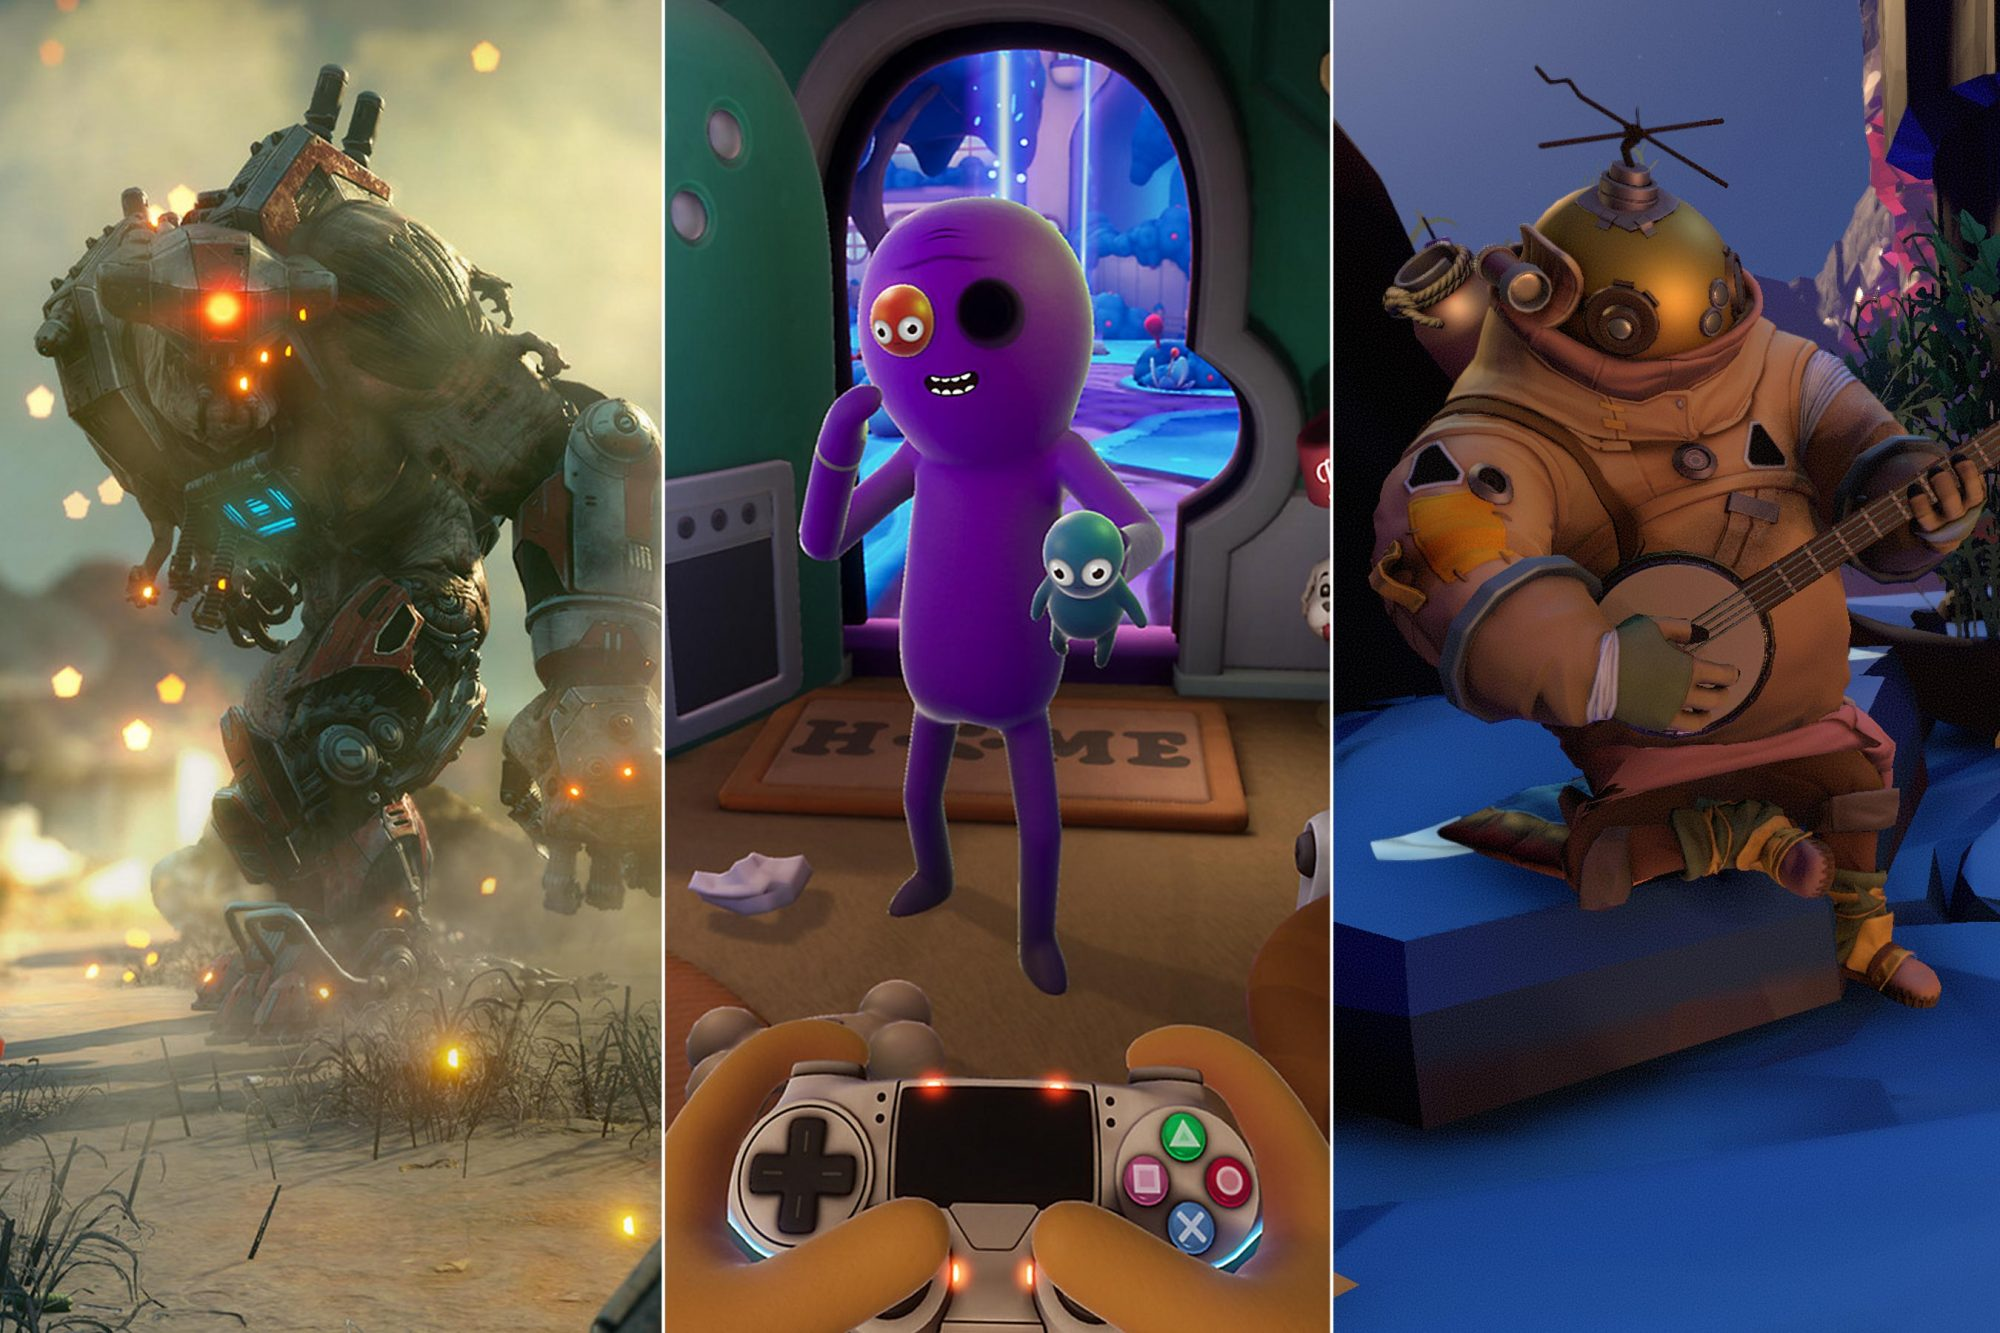 Rage 2, Trover Saves the Universe, Outer Wilds